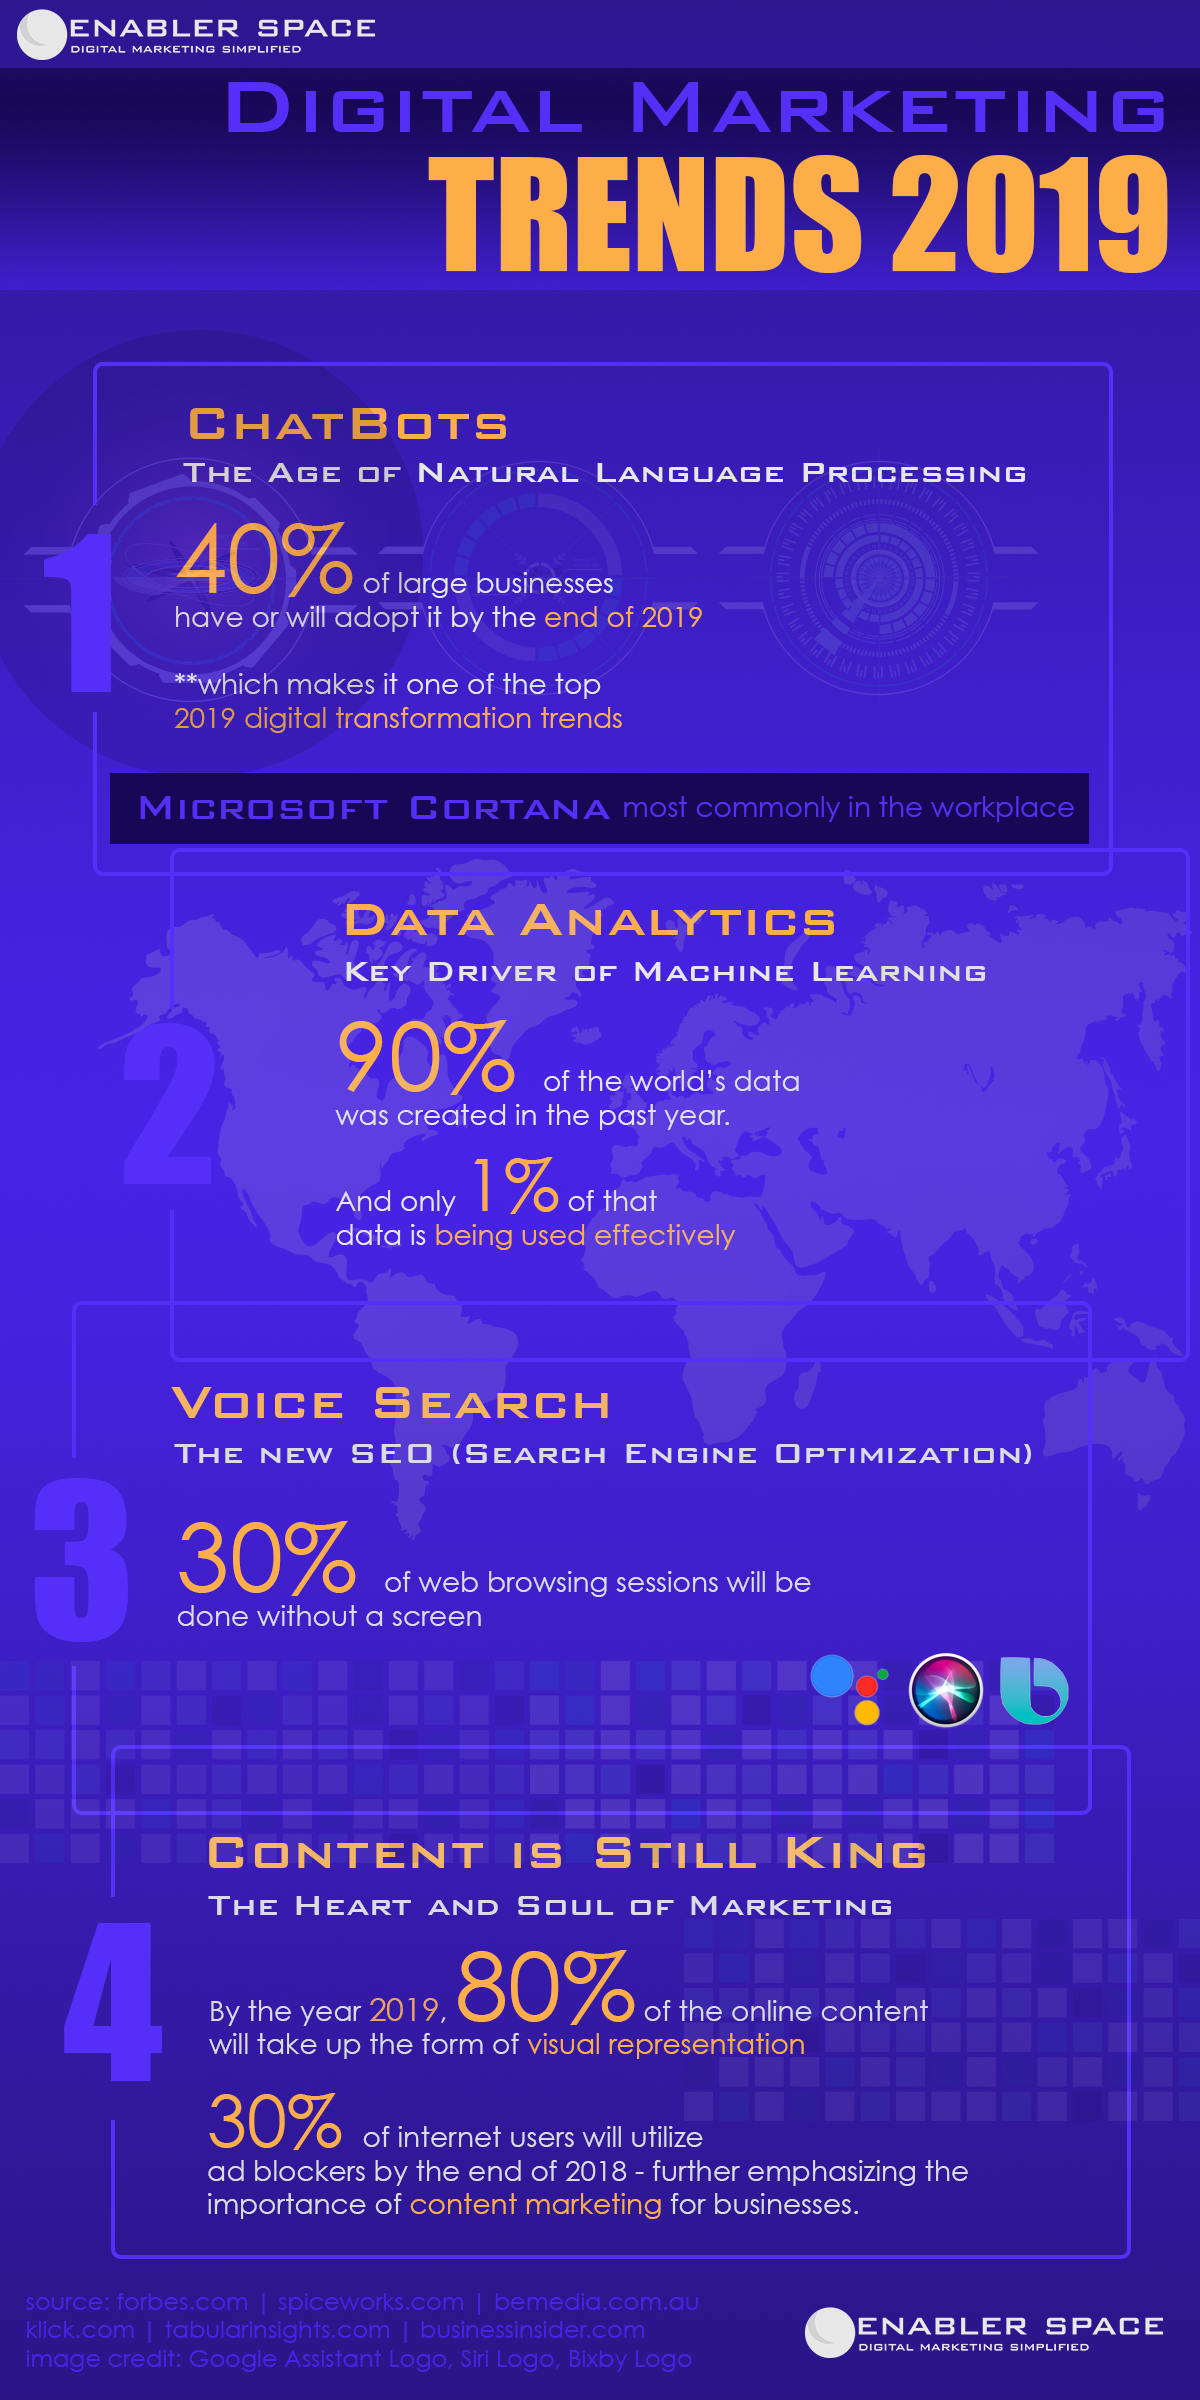 Digital Marketing Trends Infographic 2019